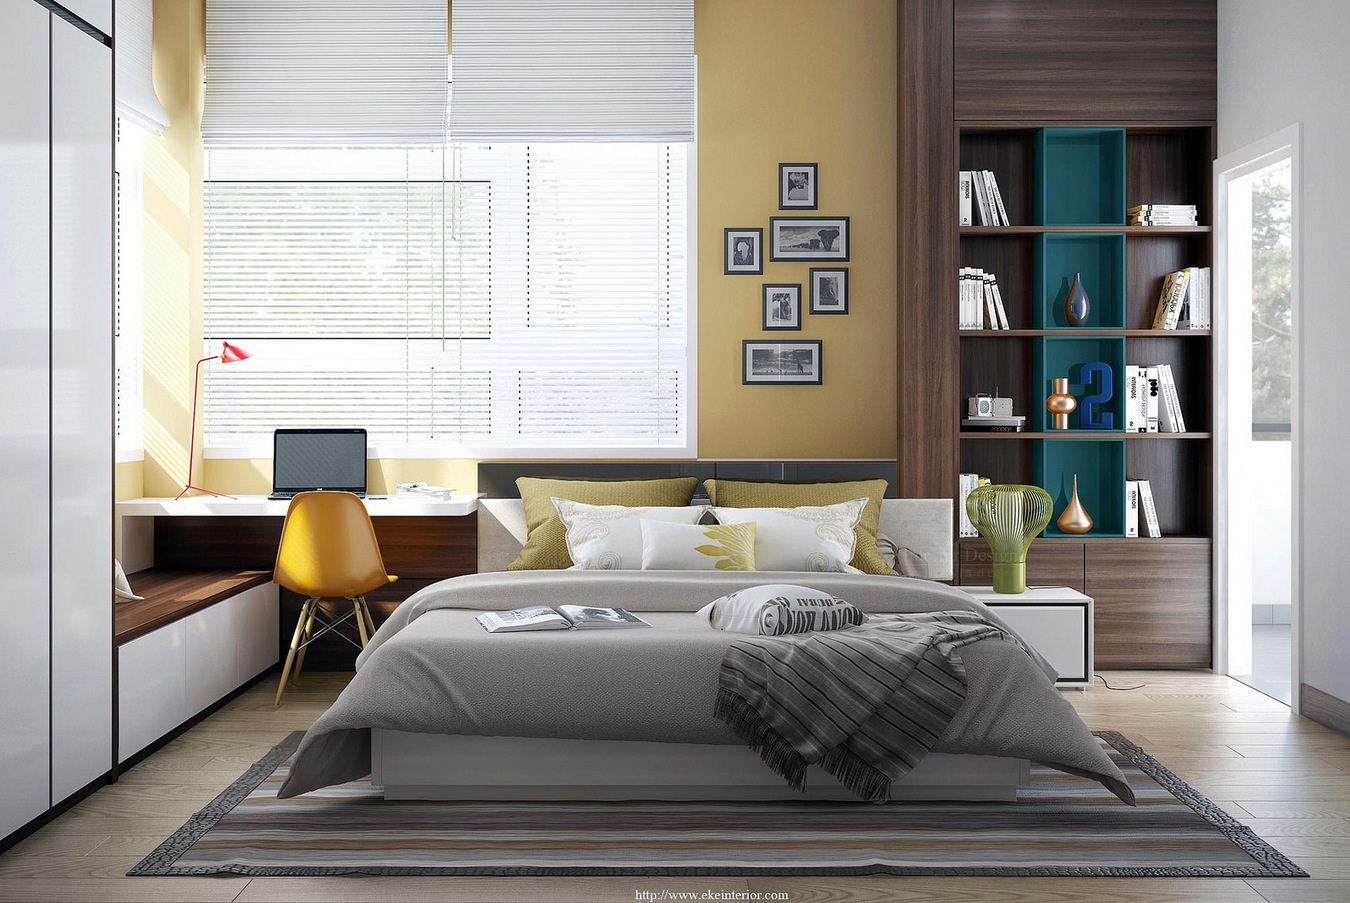 20 modern bedroom designs - Full Bedroom Designs